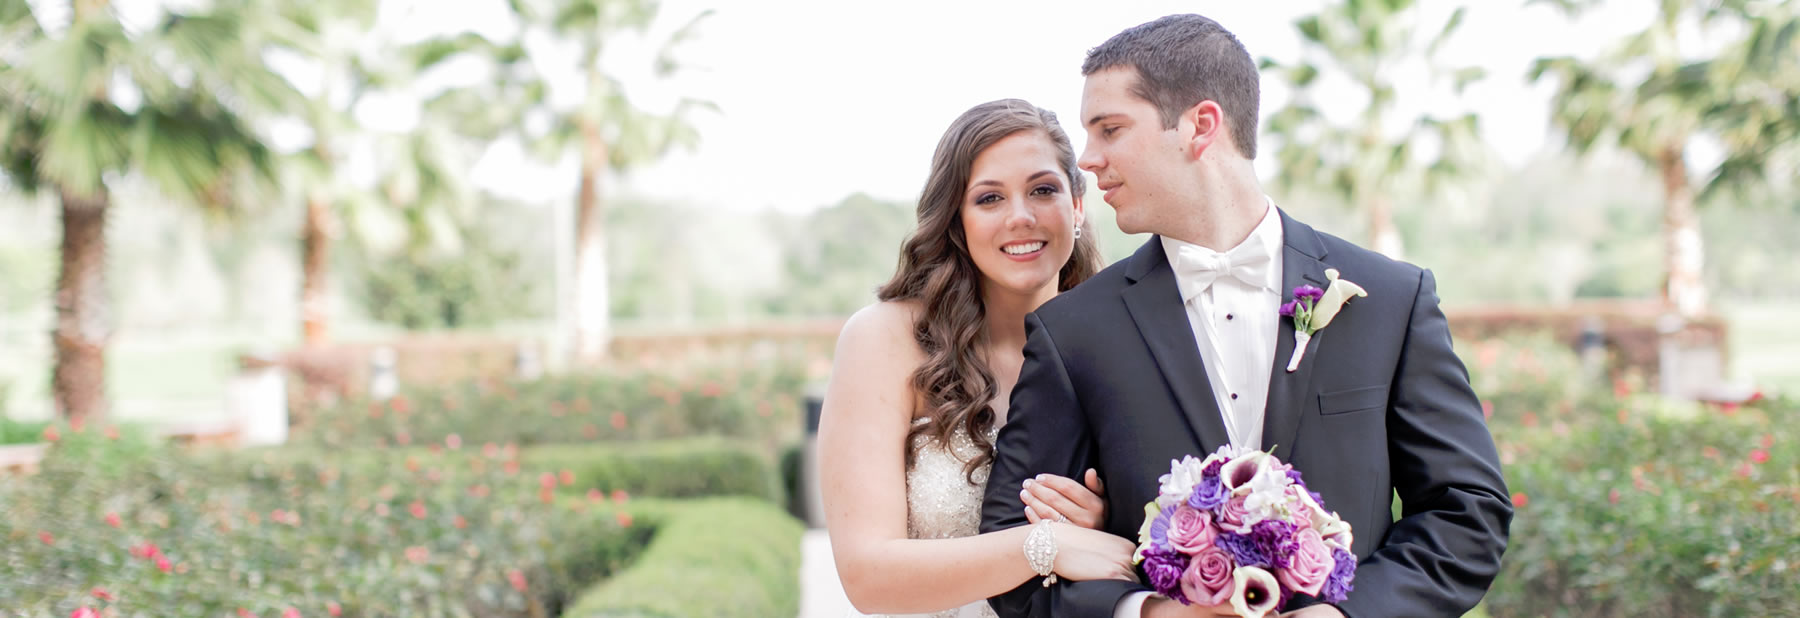 Newlyweds outside at Rosen Shingle Creek